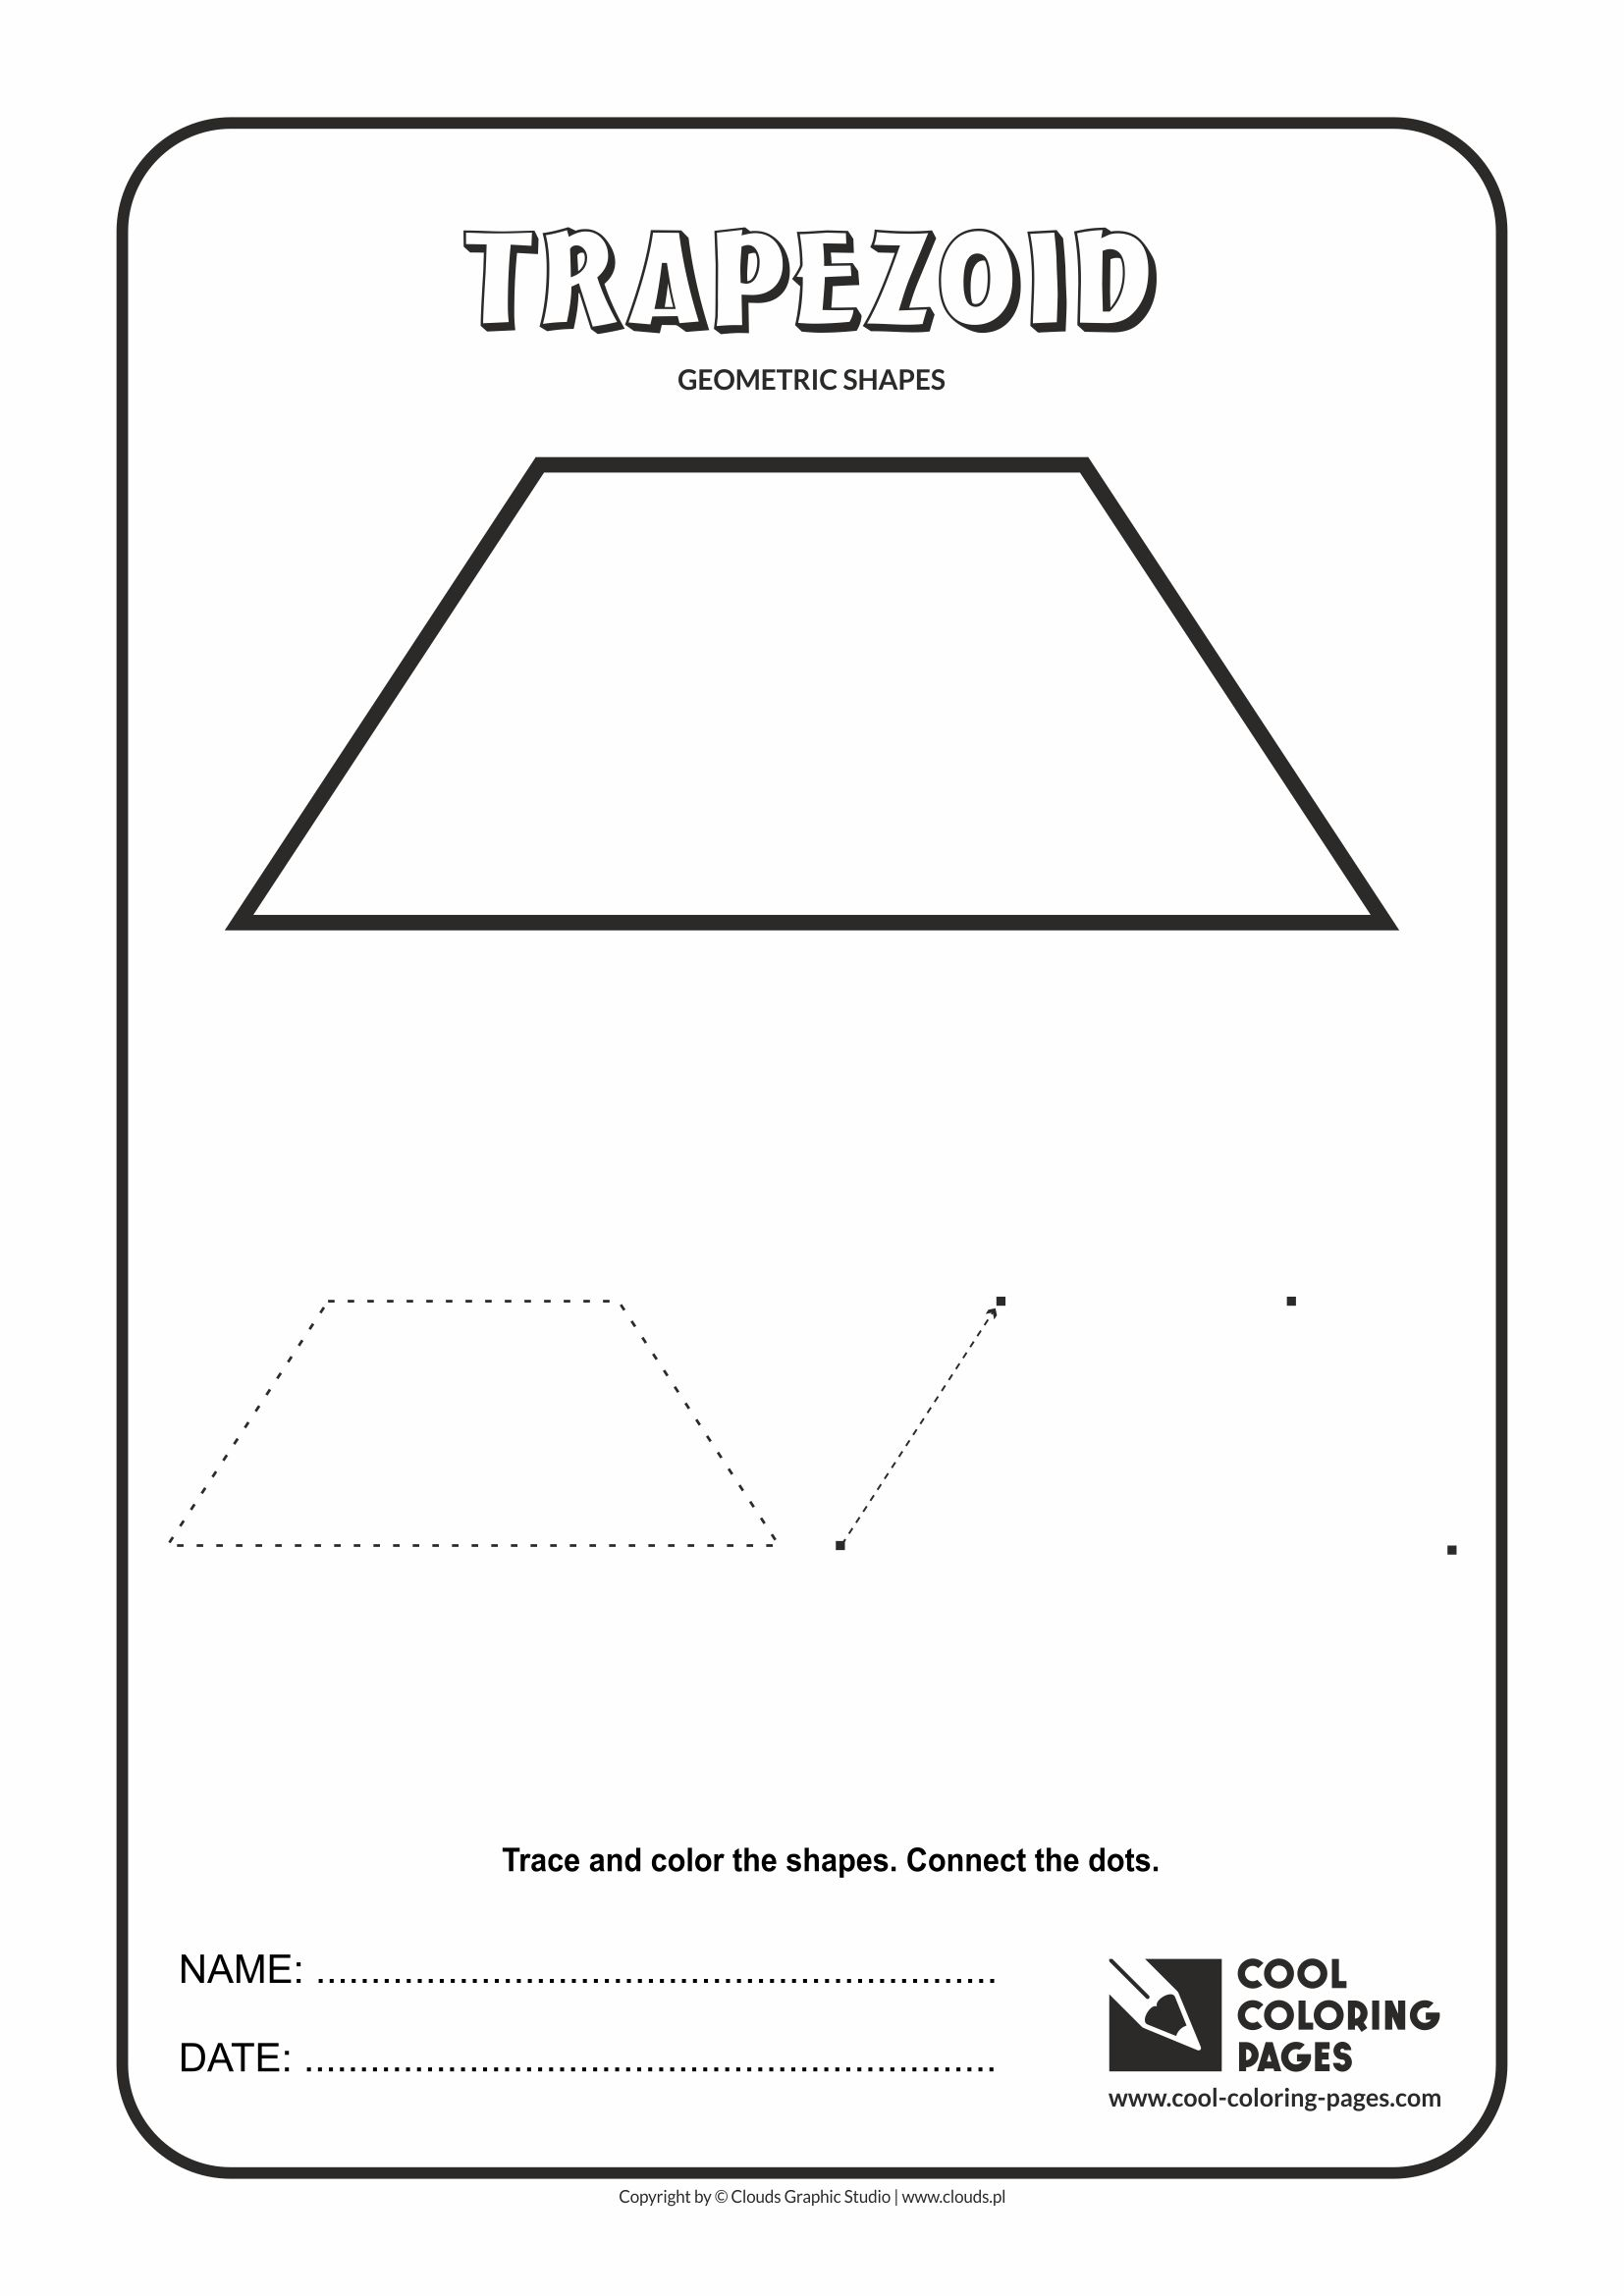 Cool Coloring Pages Geometric Shapes